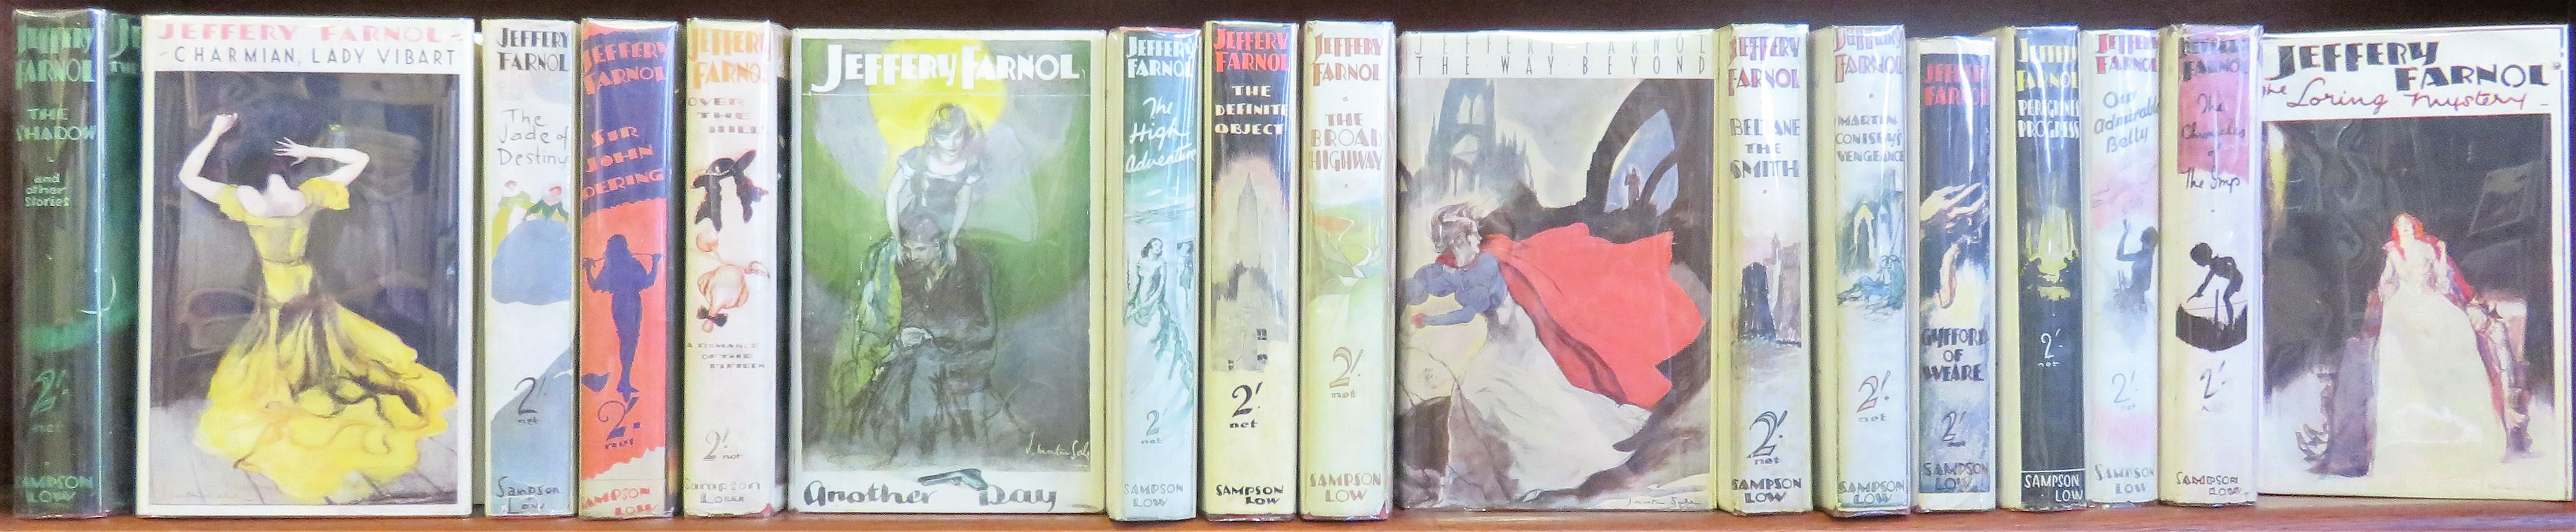 Jeffery Farnol 17 Volume Set